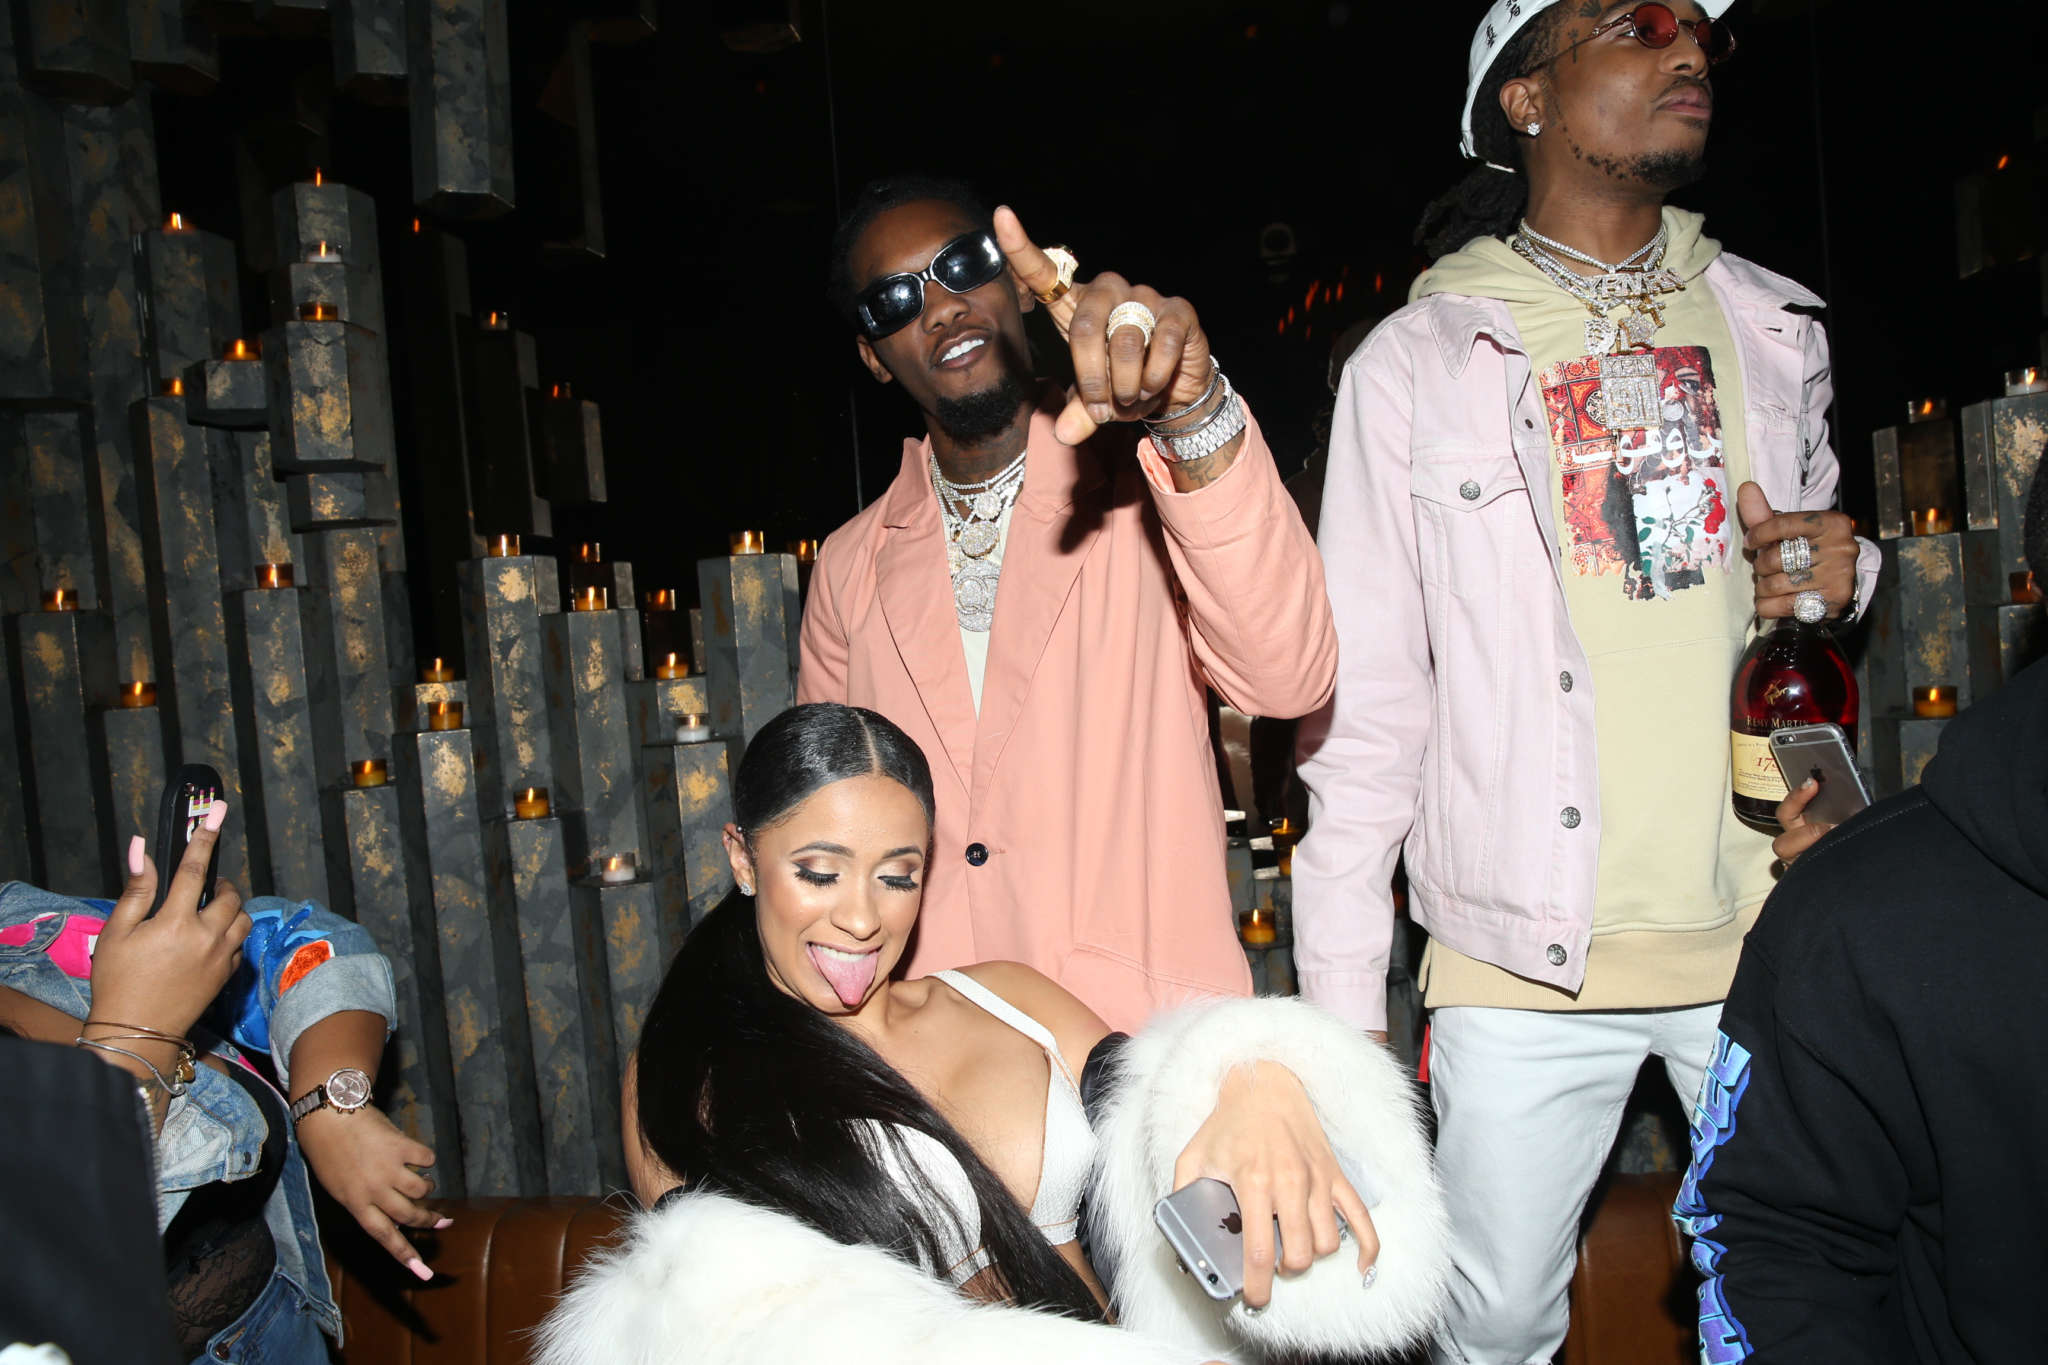 cardi-b-drags-her-fans-for-trolling-offset-tells-them-they-dont-pay-her-bills-and-mentions-ariana-grande